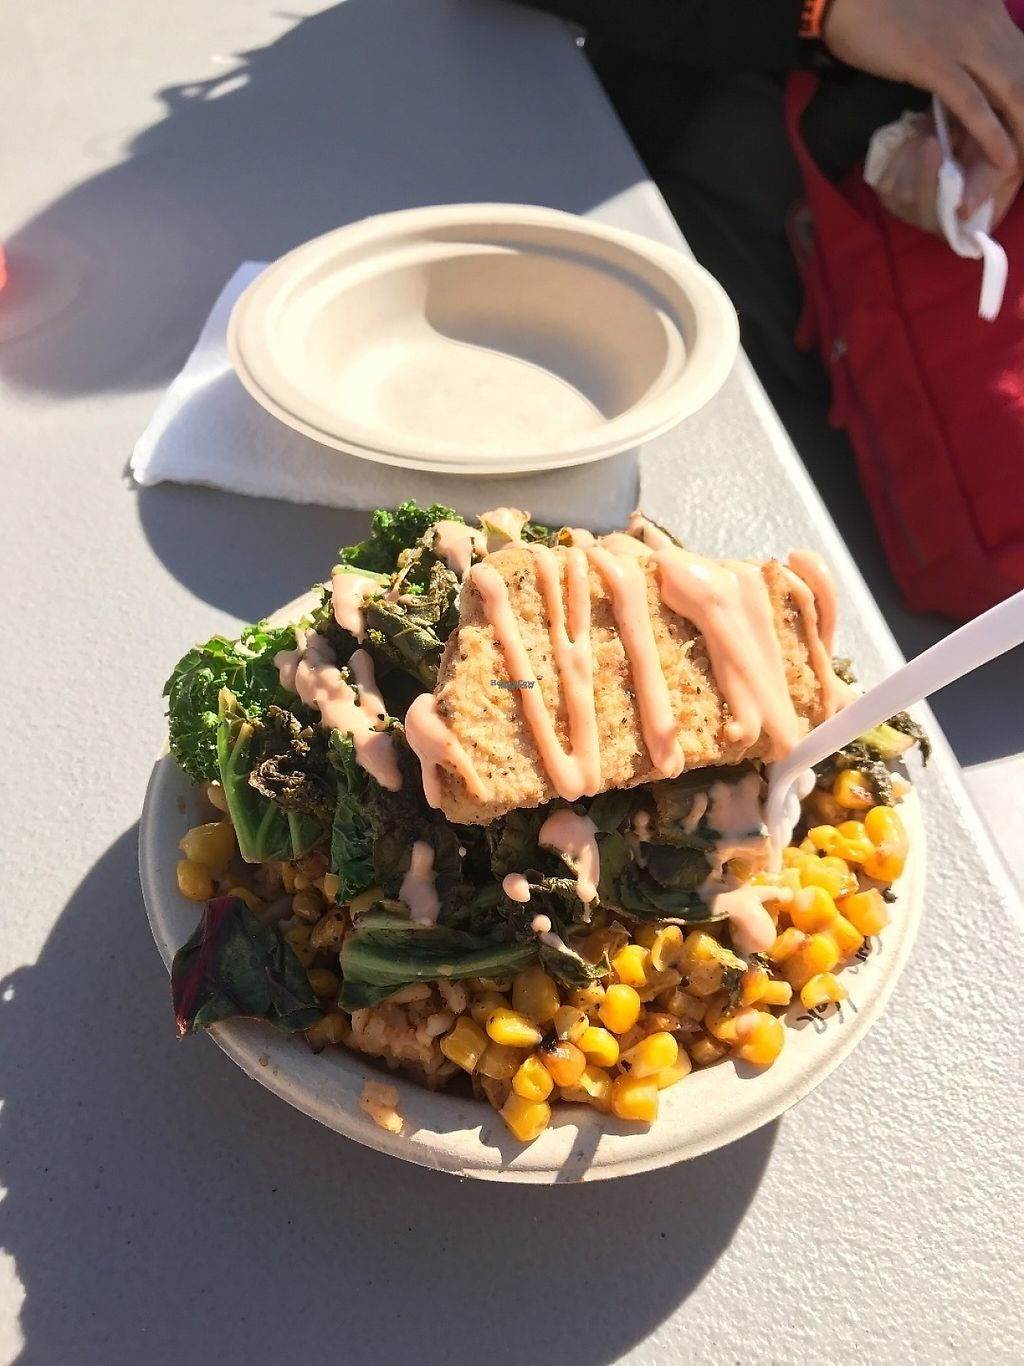 """Photo of Southern Fried Vegan BBQ  by <a href=""""/members/profile/Tigra220"""">Tigra220</a> <br/>Fried Chicken Bowl with Jambalaya, 1/2 greens & 1/2 corn - PHX Vegan Fest; Feb 2017 <br/> March 11, 2017  - <a href='/contact/abuse/image/29946/235043'>Report</a>"""